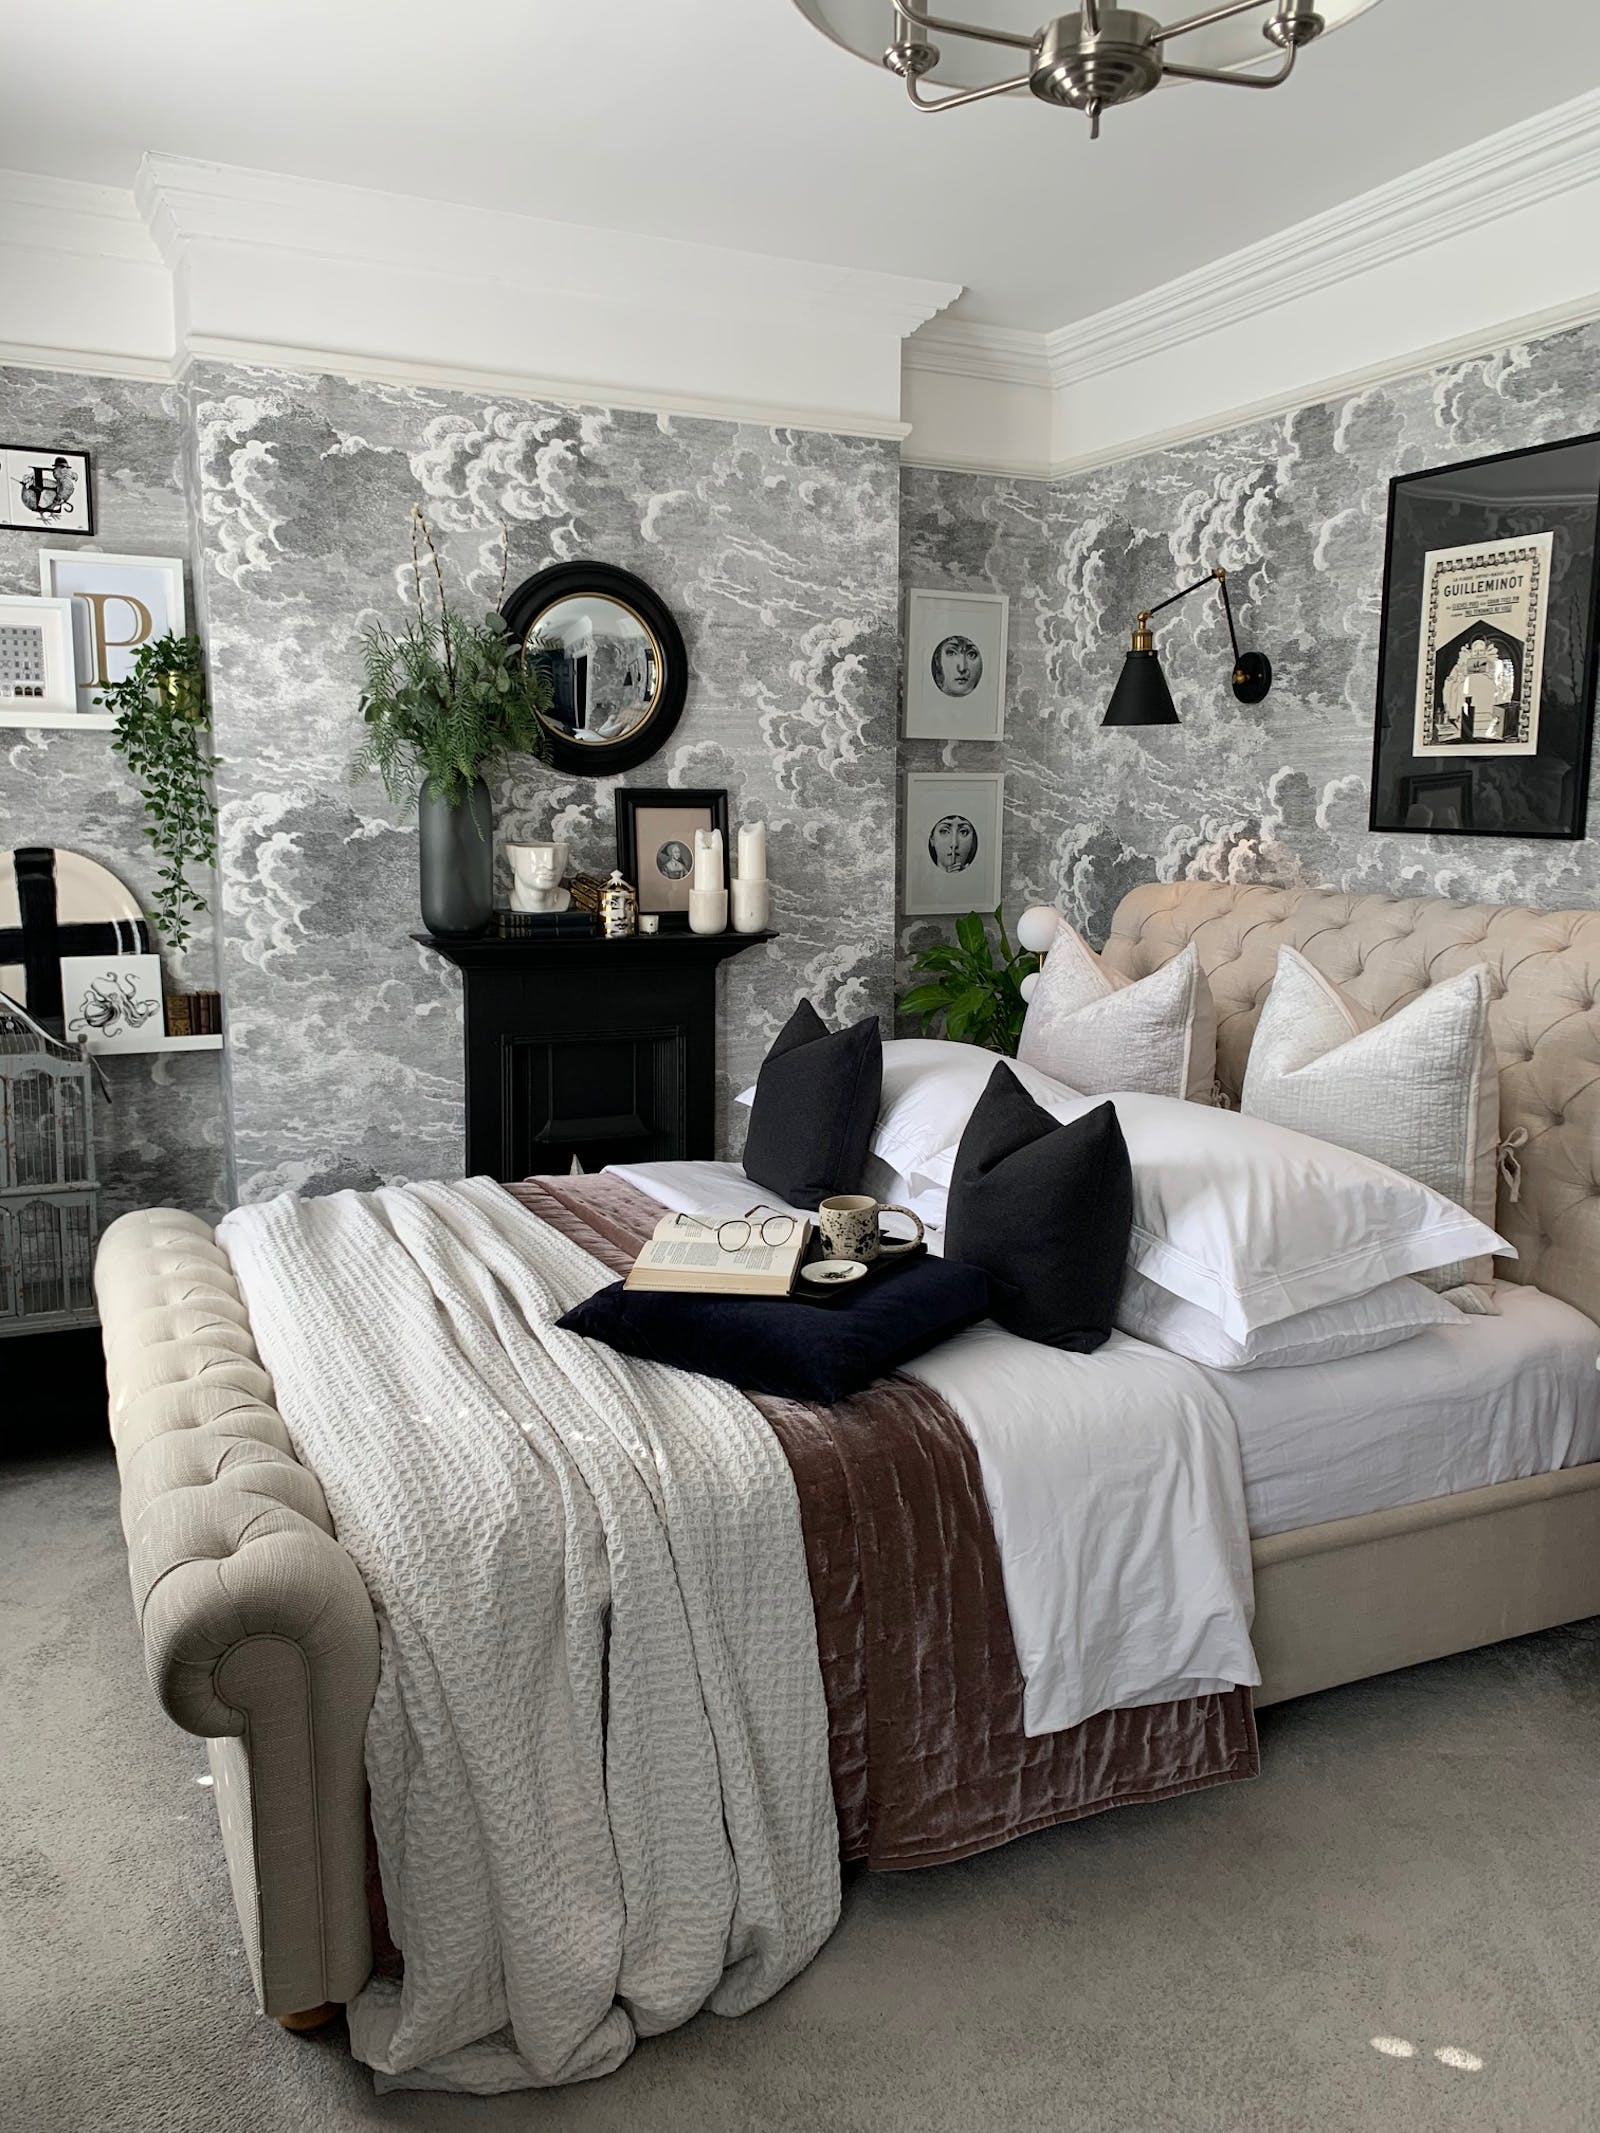 Bedroom with grey wallpaper, picture frames and dark accessories